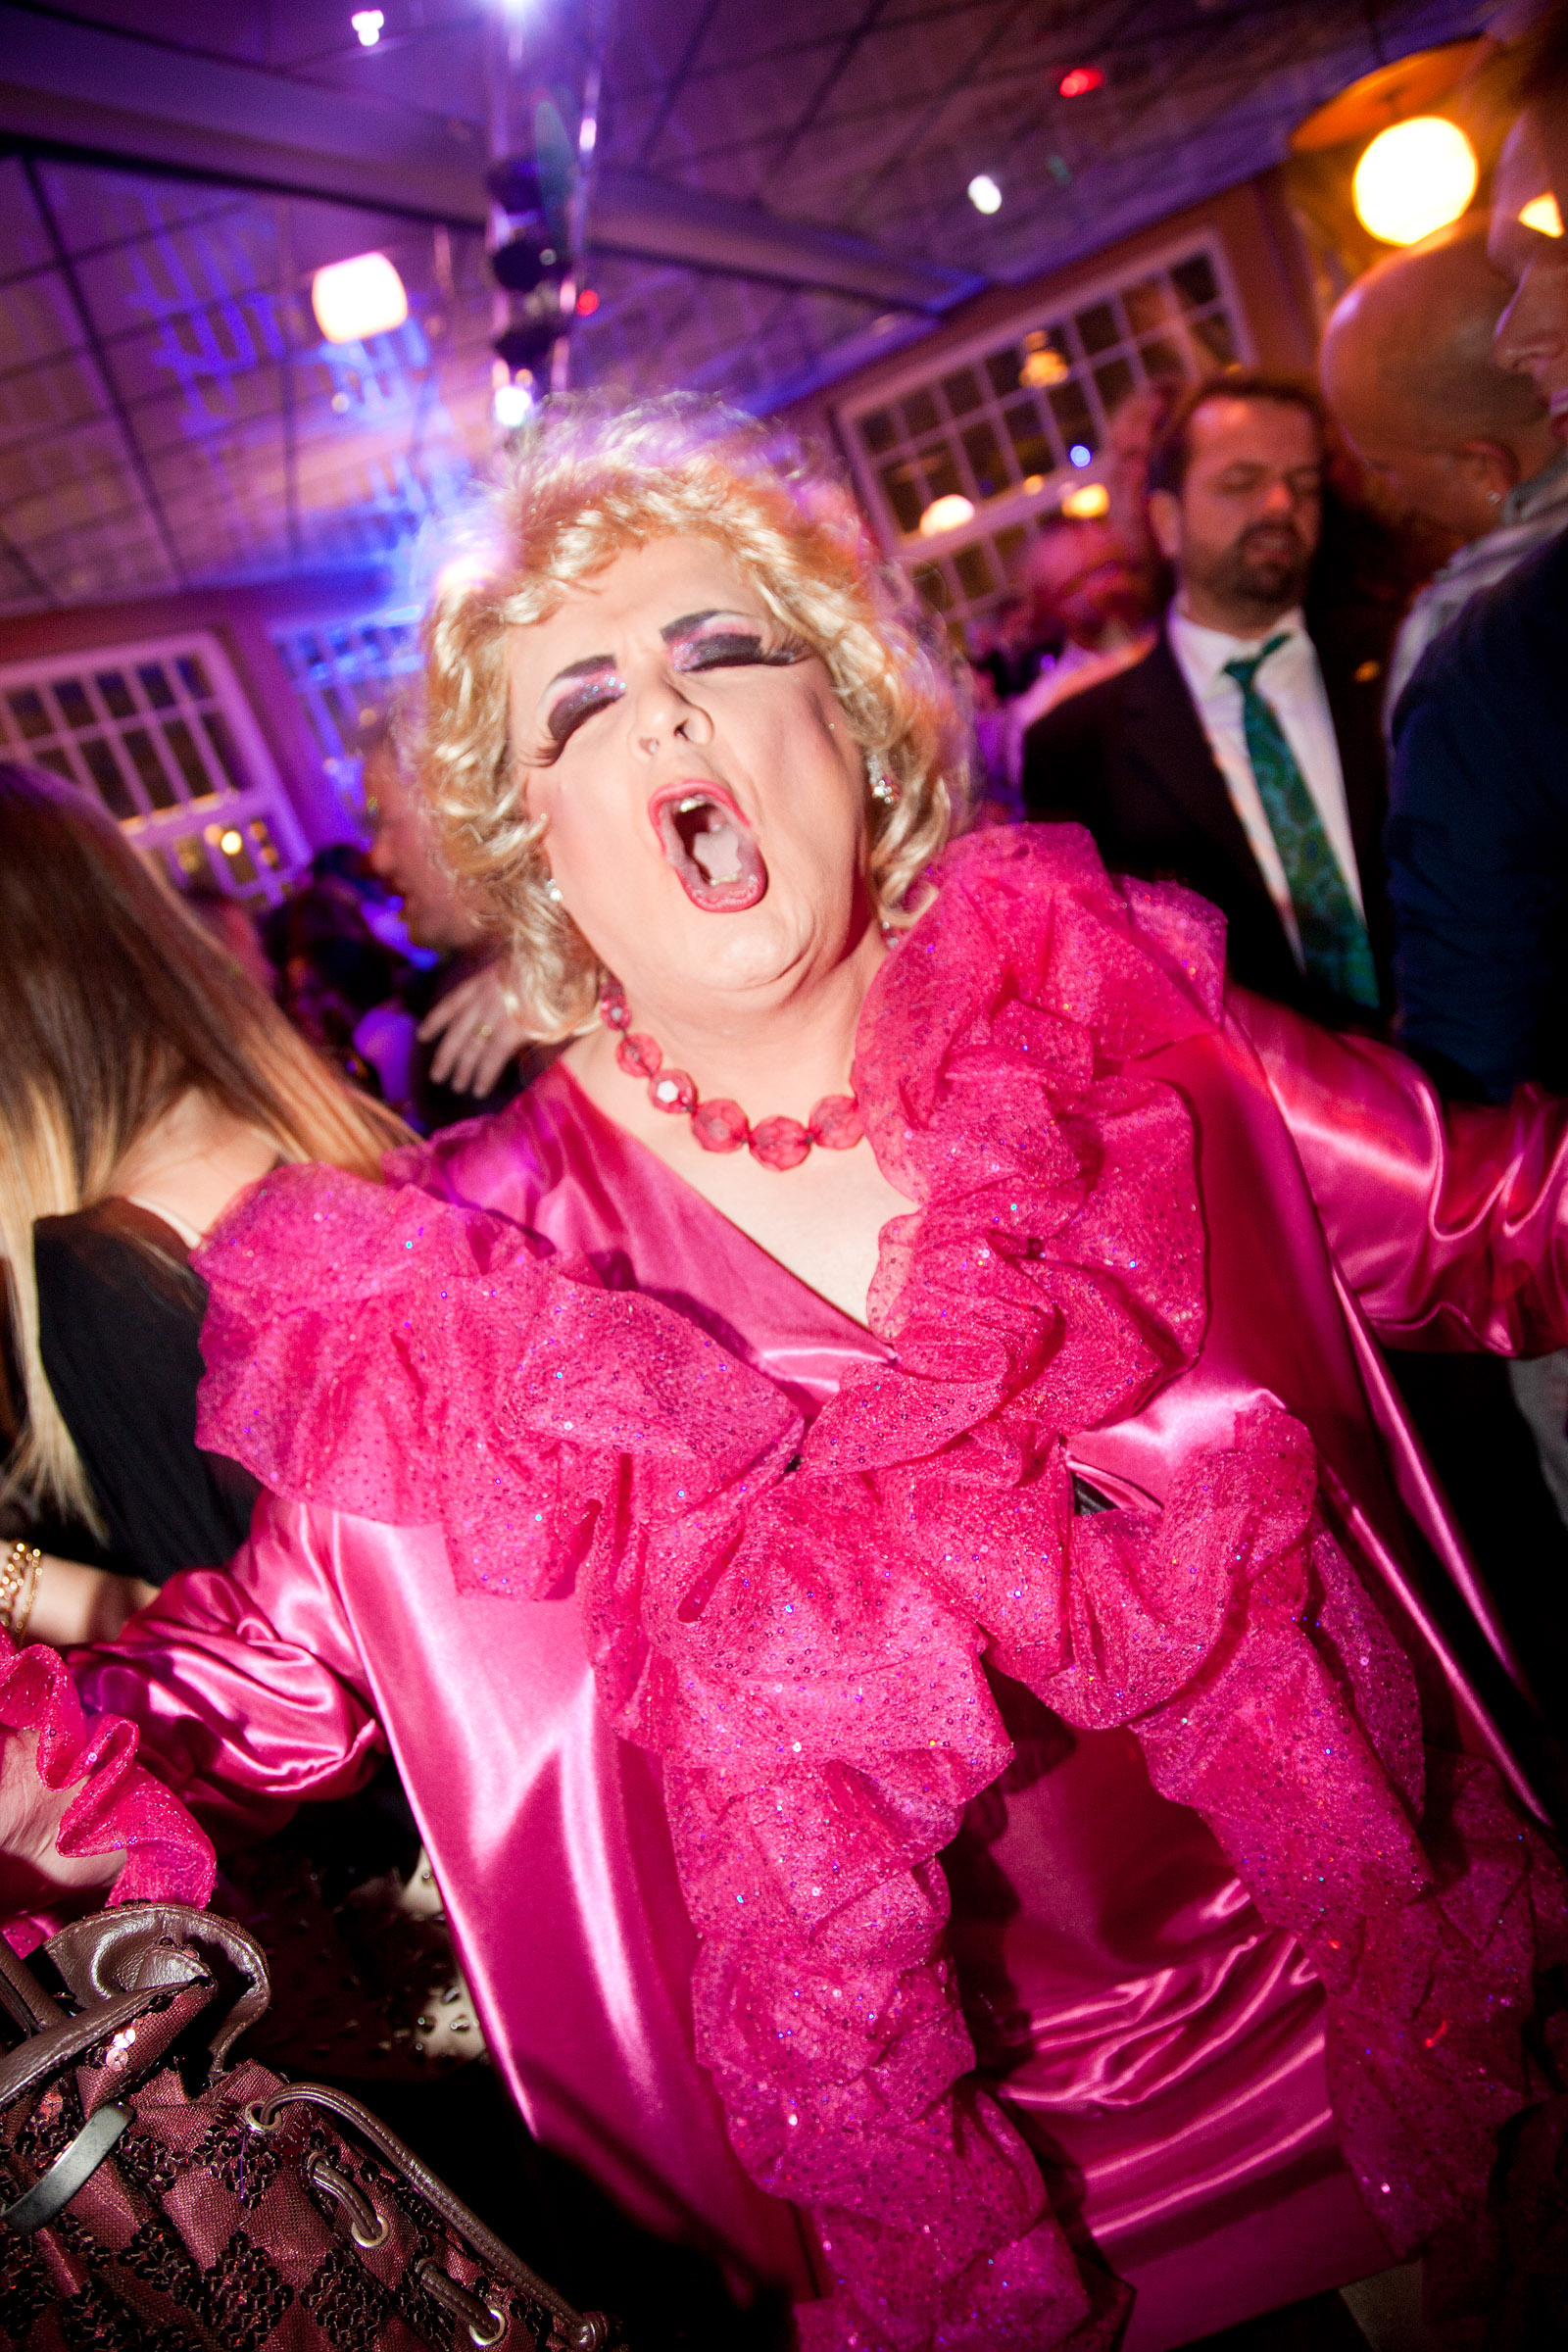 Glad-drag-queen-qx-gaygala